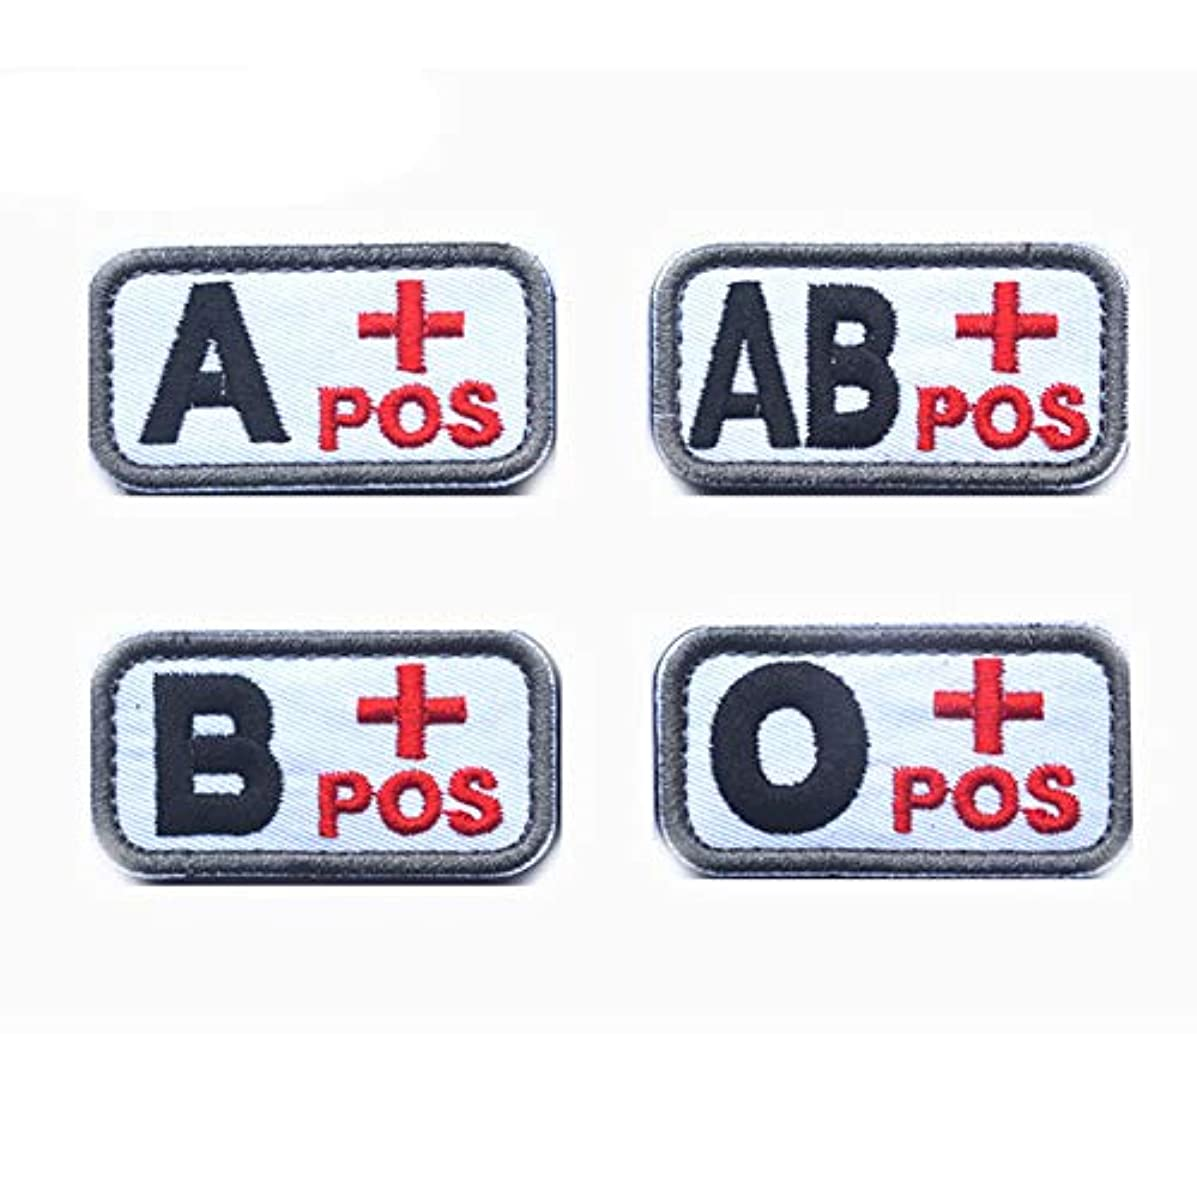 SOUTHYU 4 Pack Tactical Blood Type Patches Embroidered A+ B+ AB+ O+ Positive POS Hook and Loop Morale Patch Badge for Outdoor Military Army Gear, Operator Cap